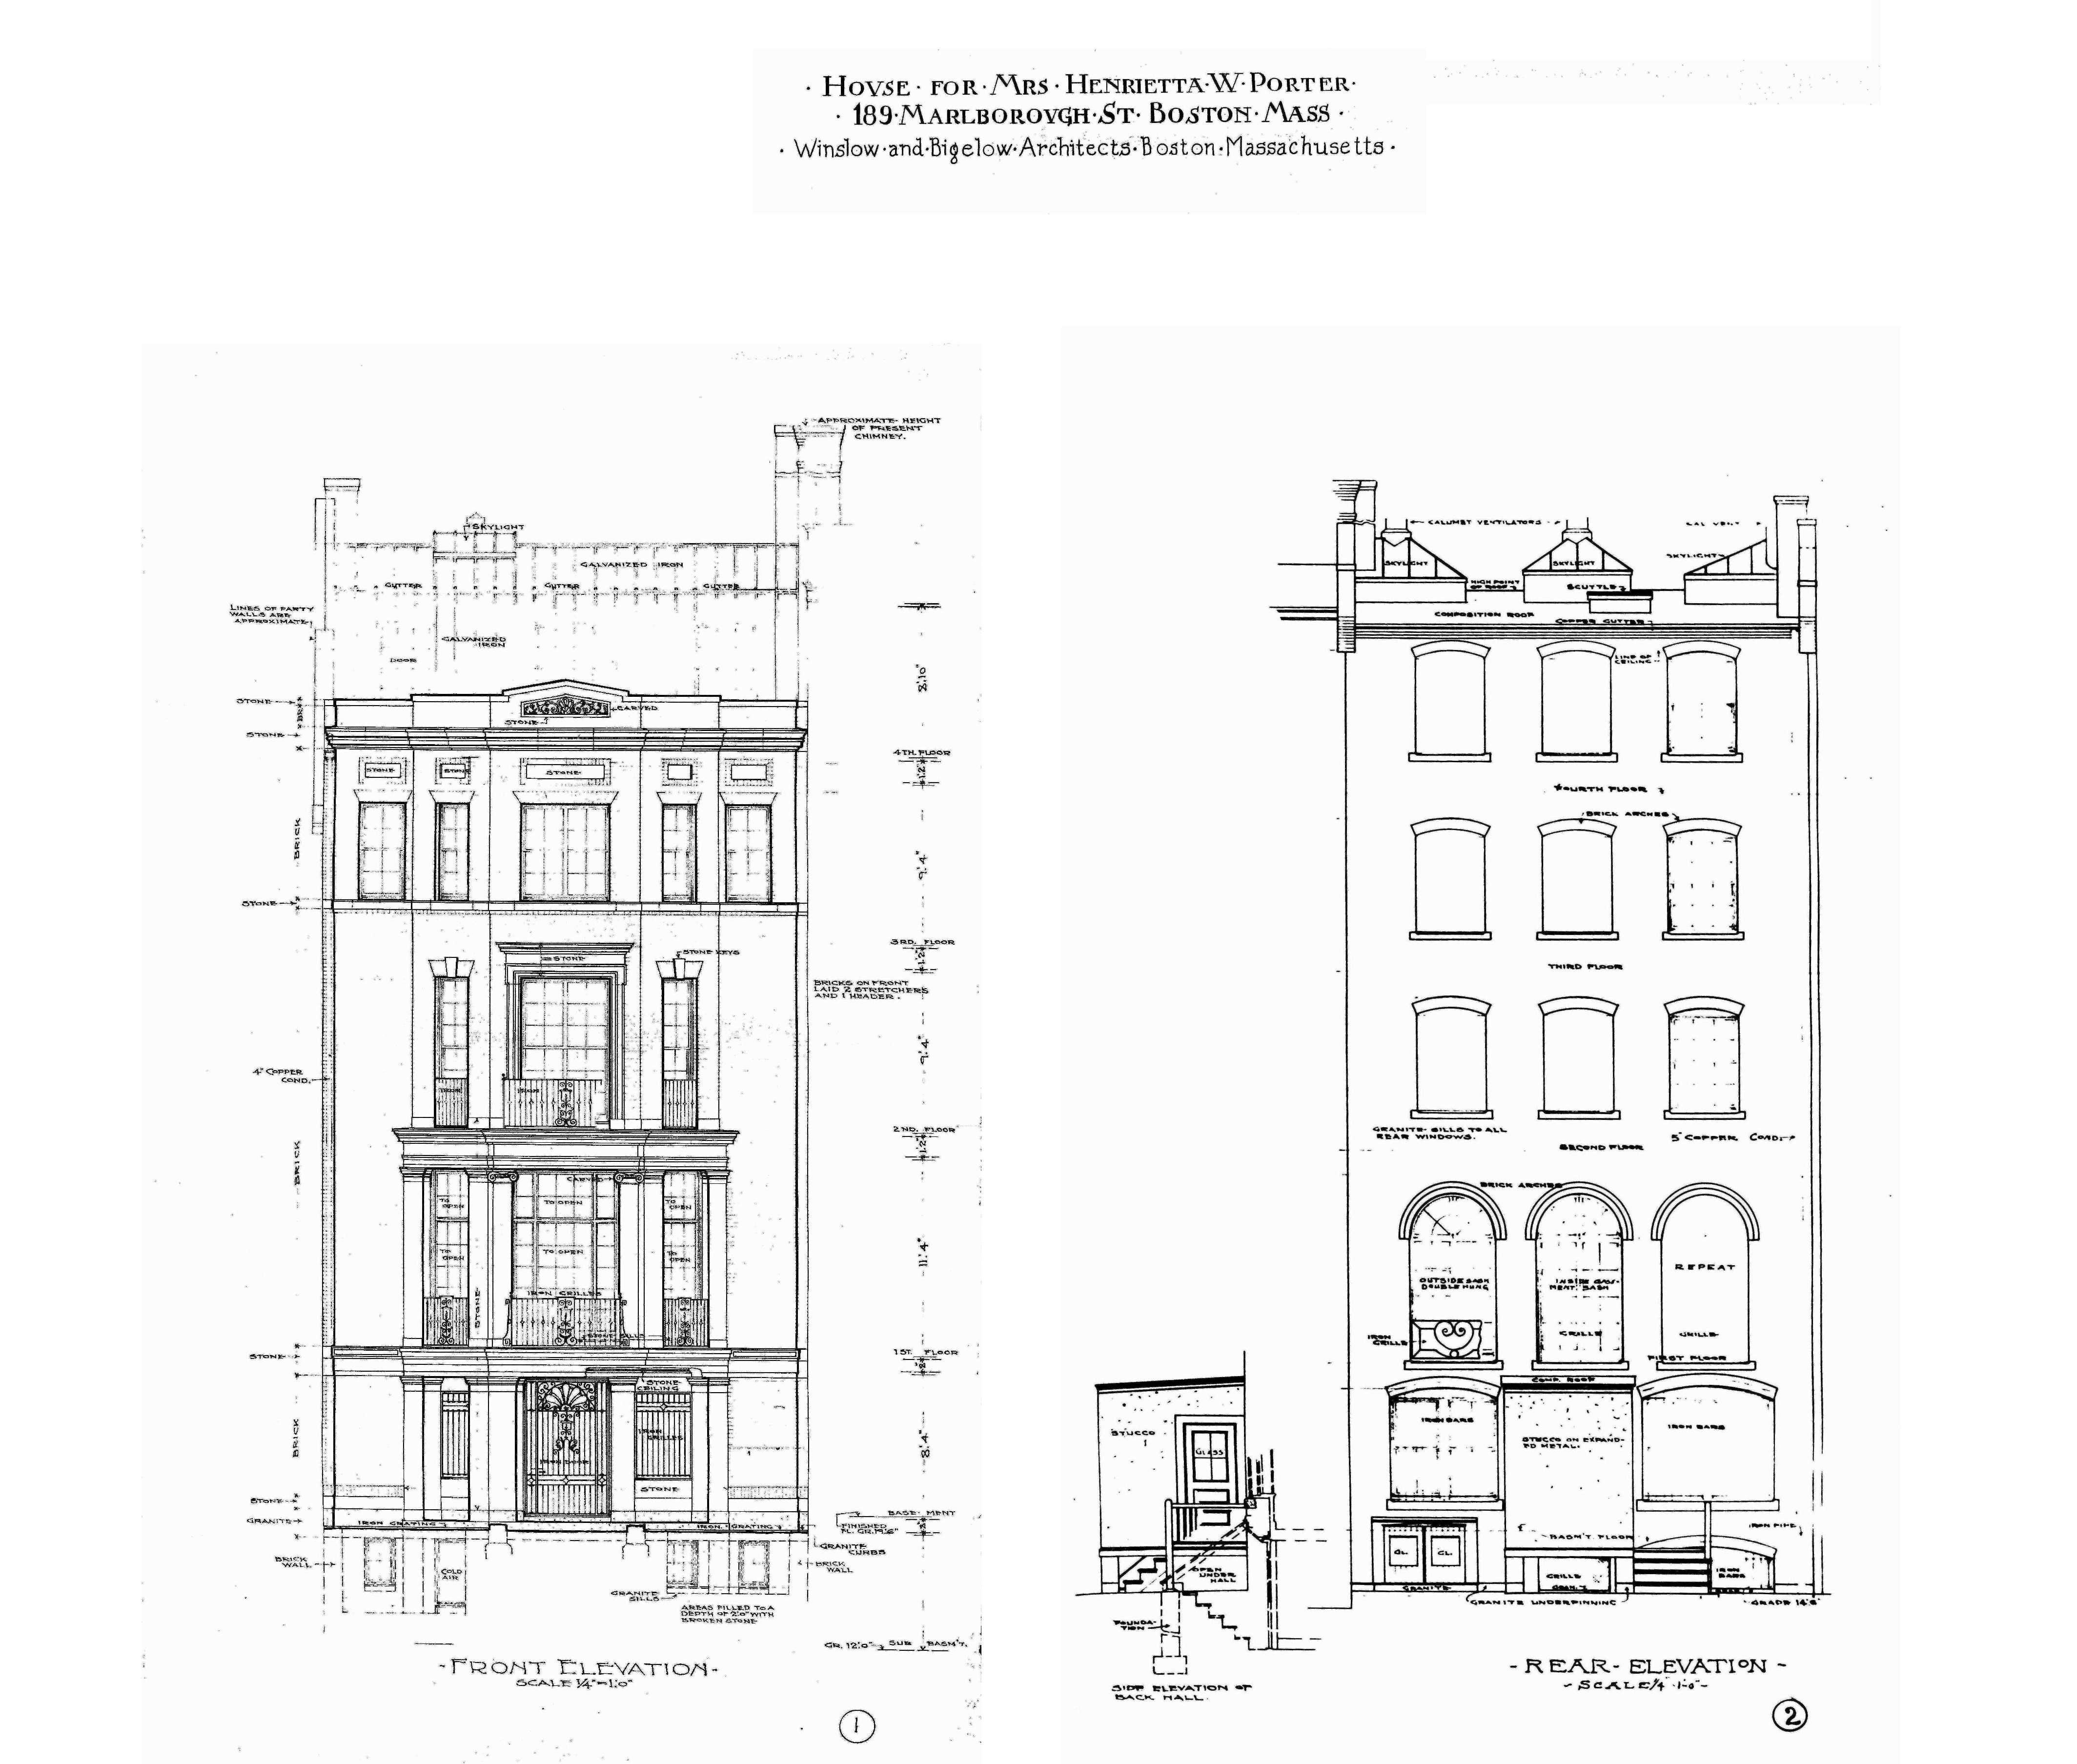 189 marlborough back bay houses combined architectural renderings of the front and rear elevations of 189 marlborough 1906 malvernweather Choice Image